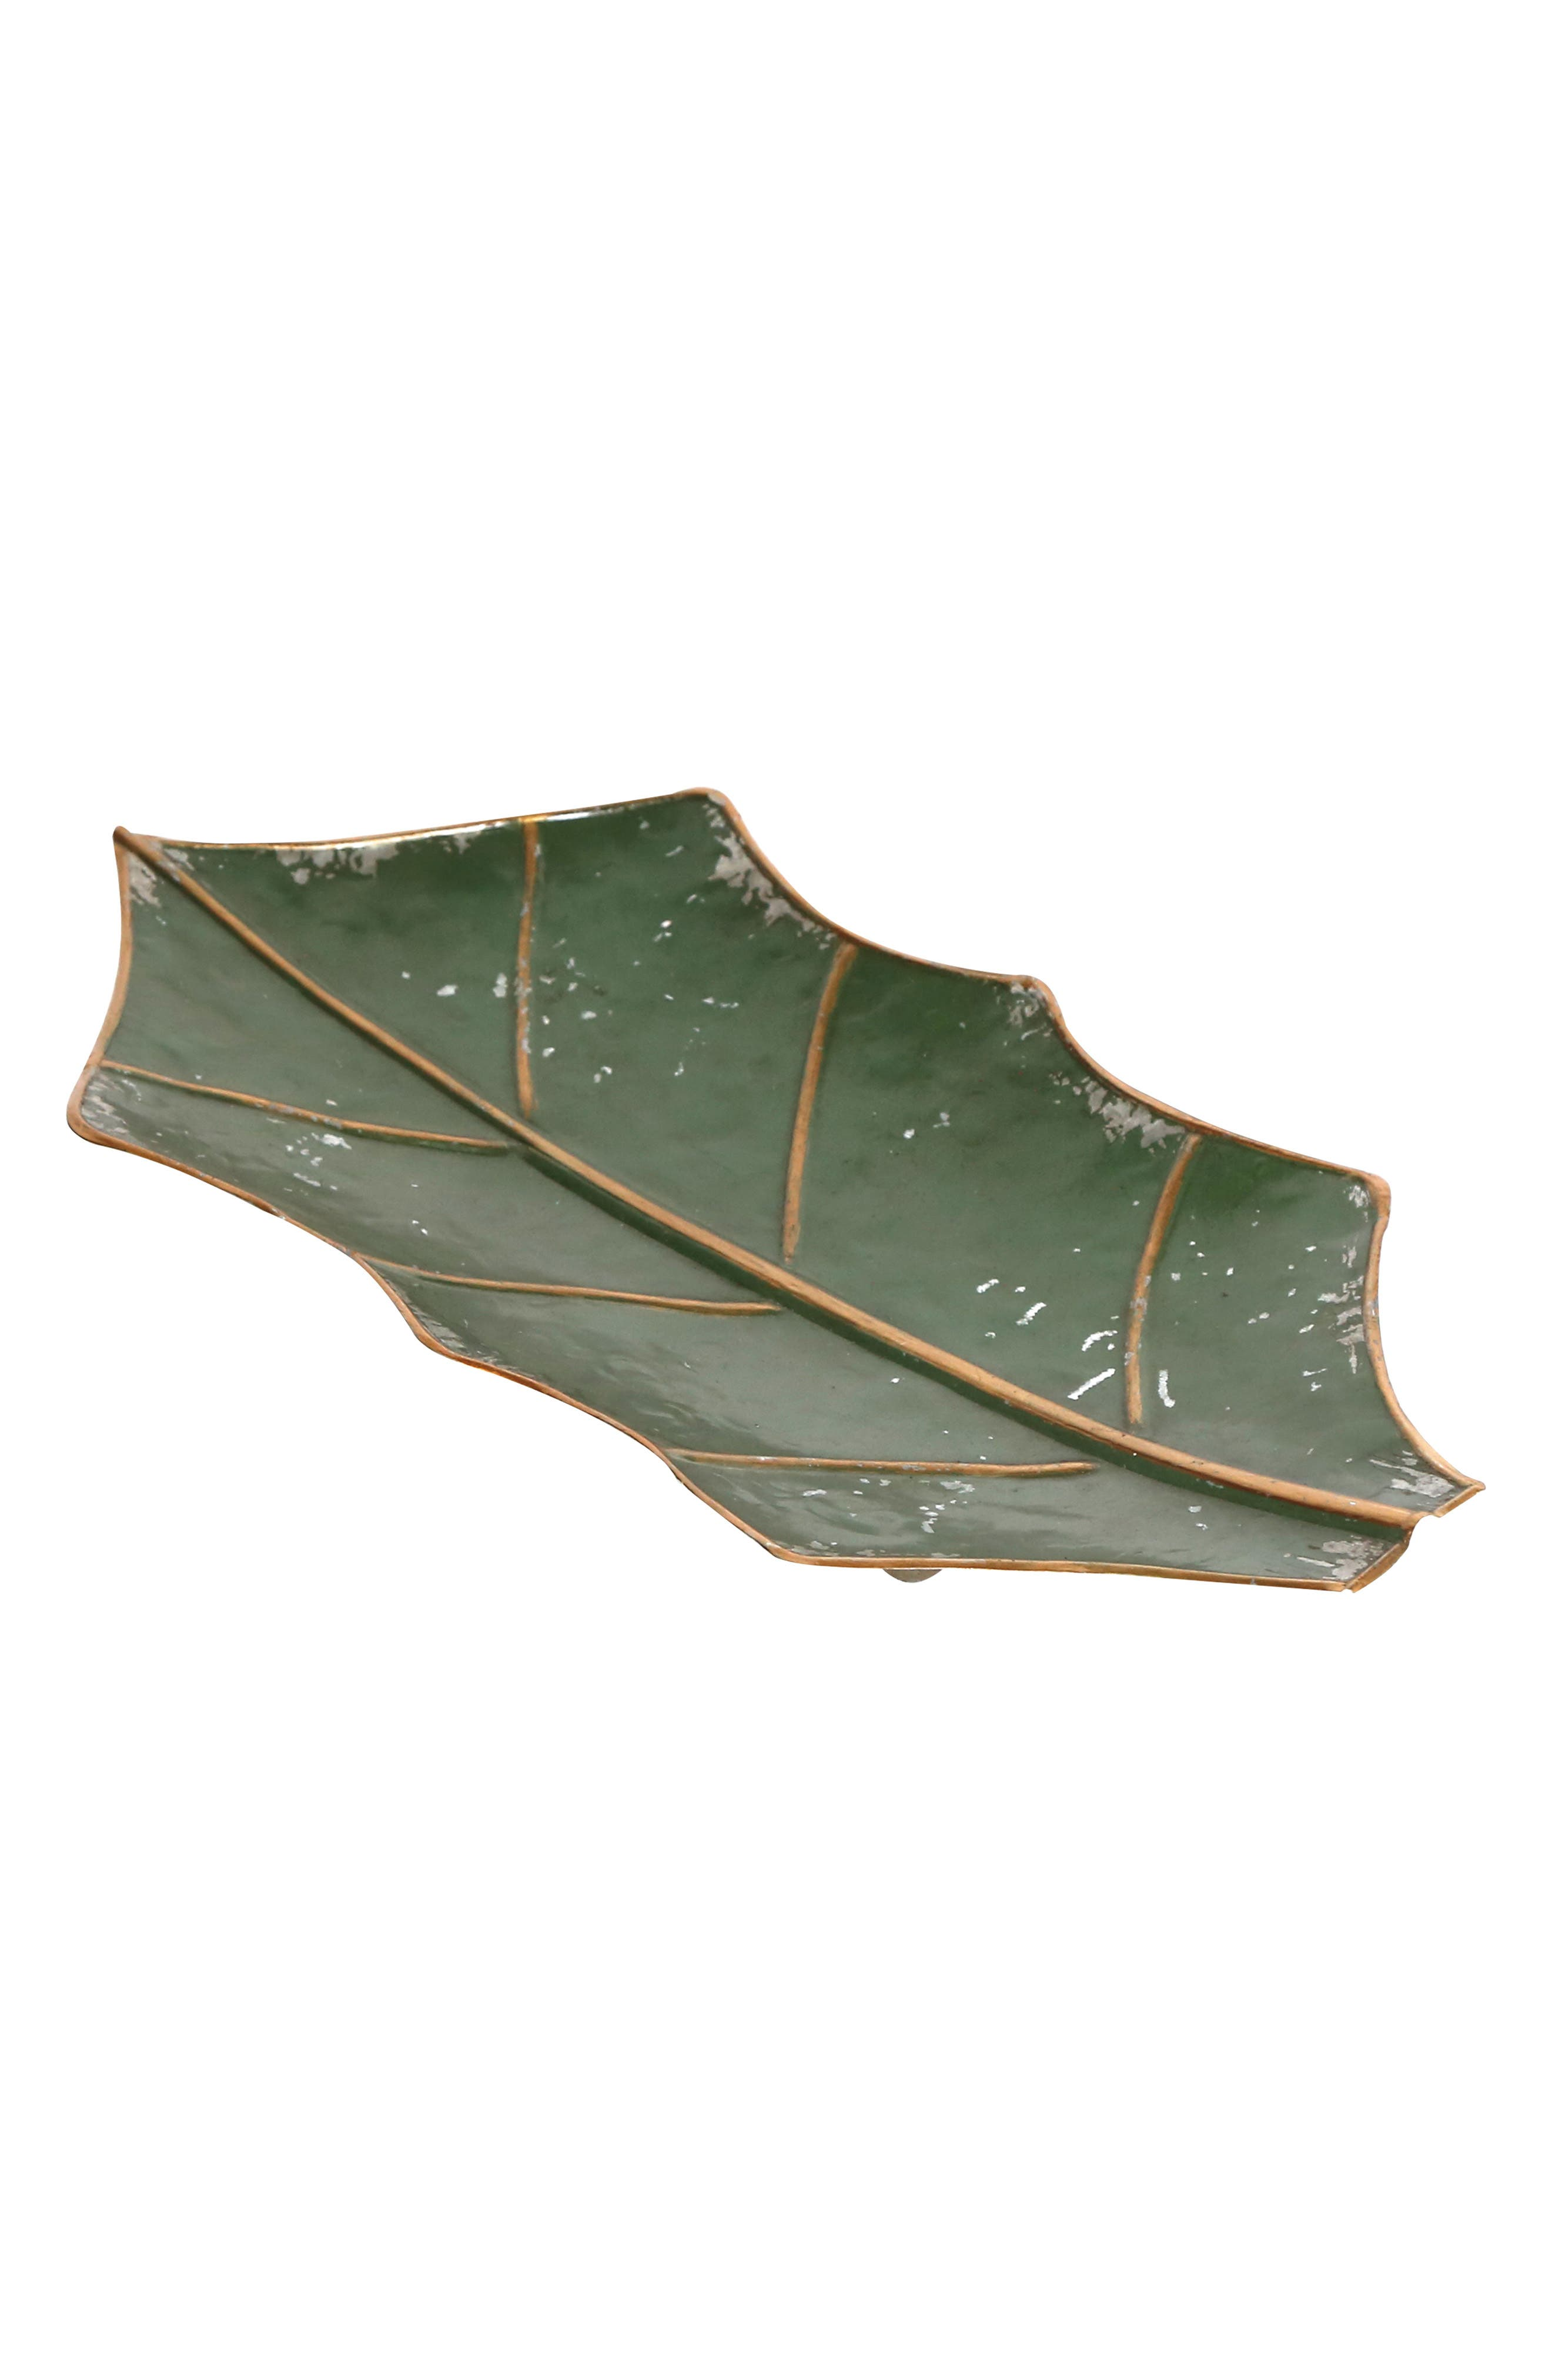 Foreside Holiday Leaf Tray